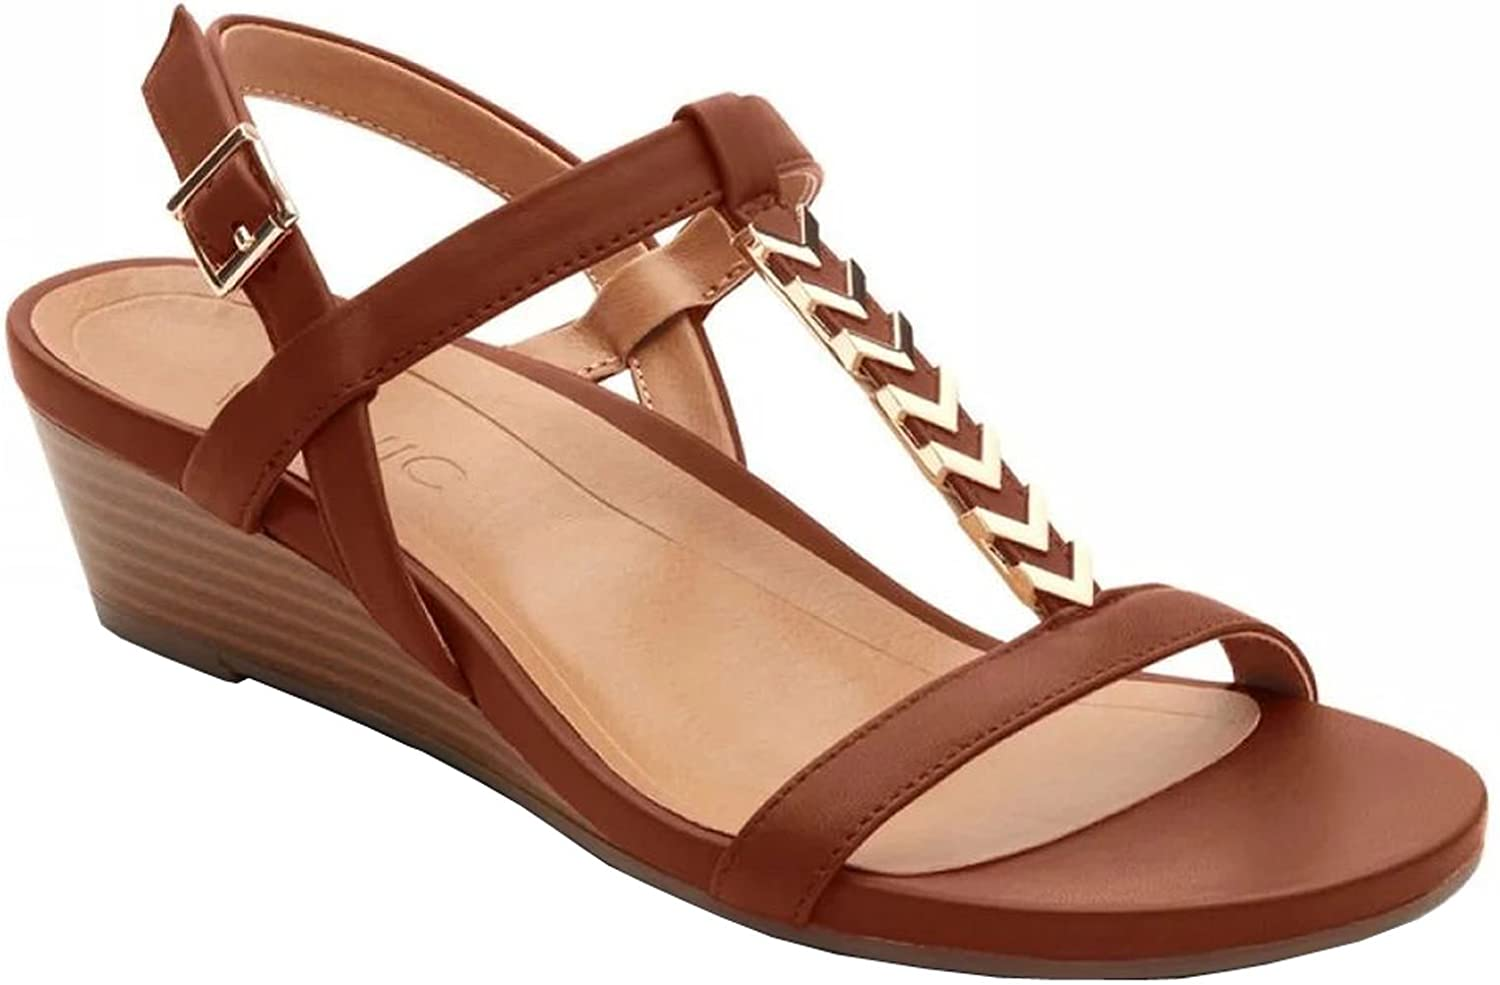 Vionic Womens Cali Wedge Sandal, Rust, Size 10 Wide B071JW19VP Parent